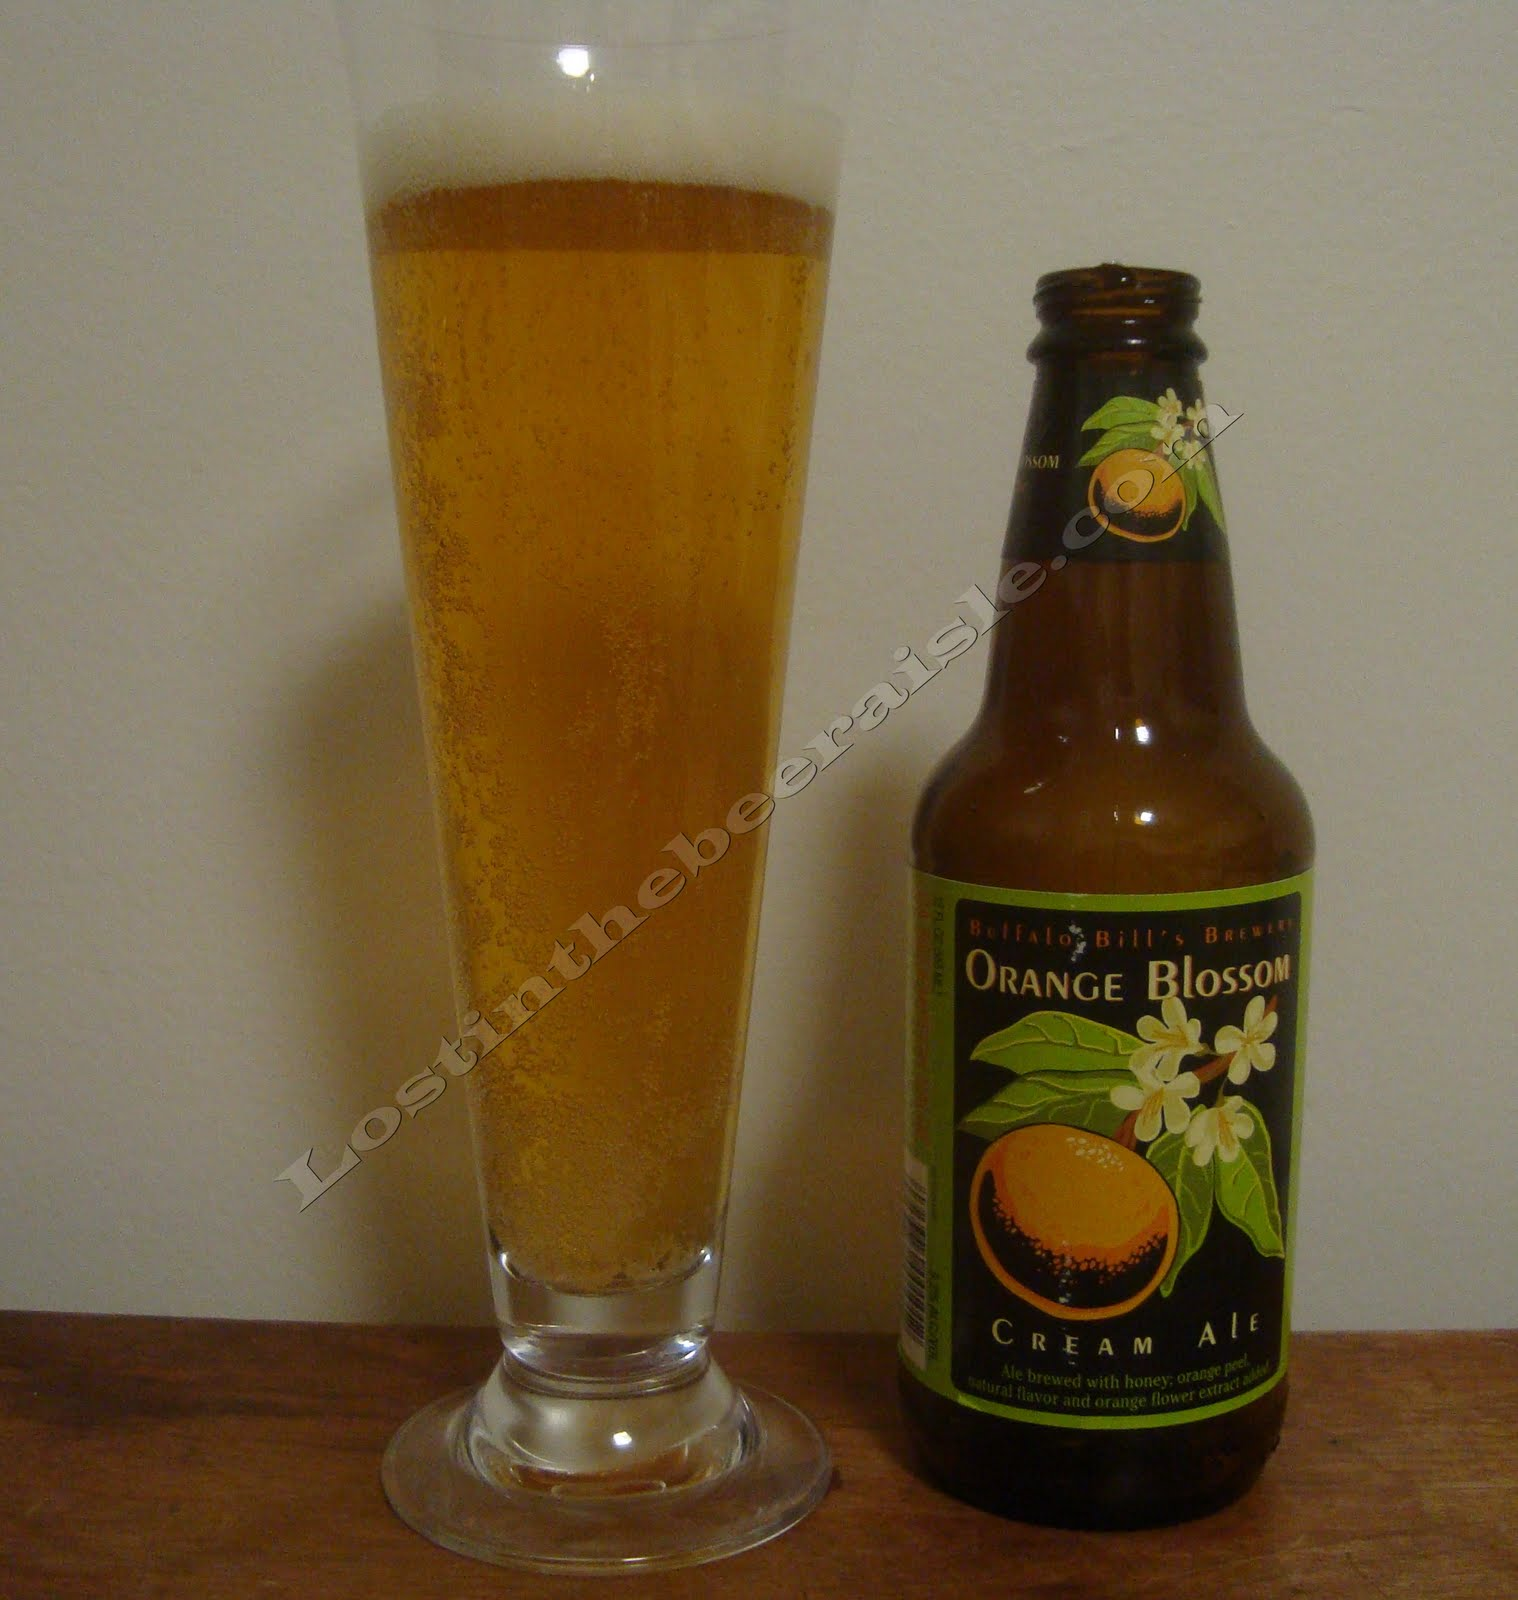 Orange Blossom Beer Buffalo Bills Buffalo Bill's Orange Blossom